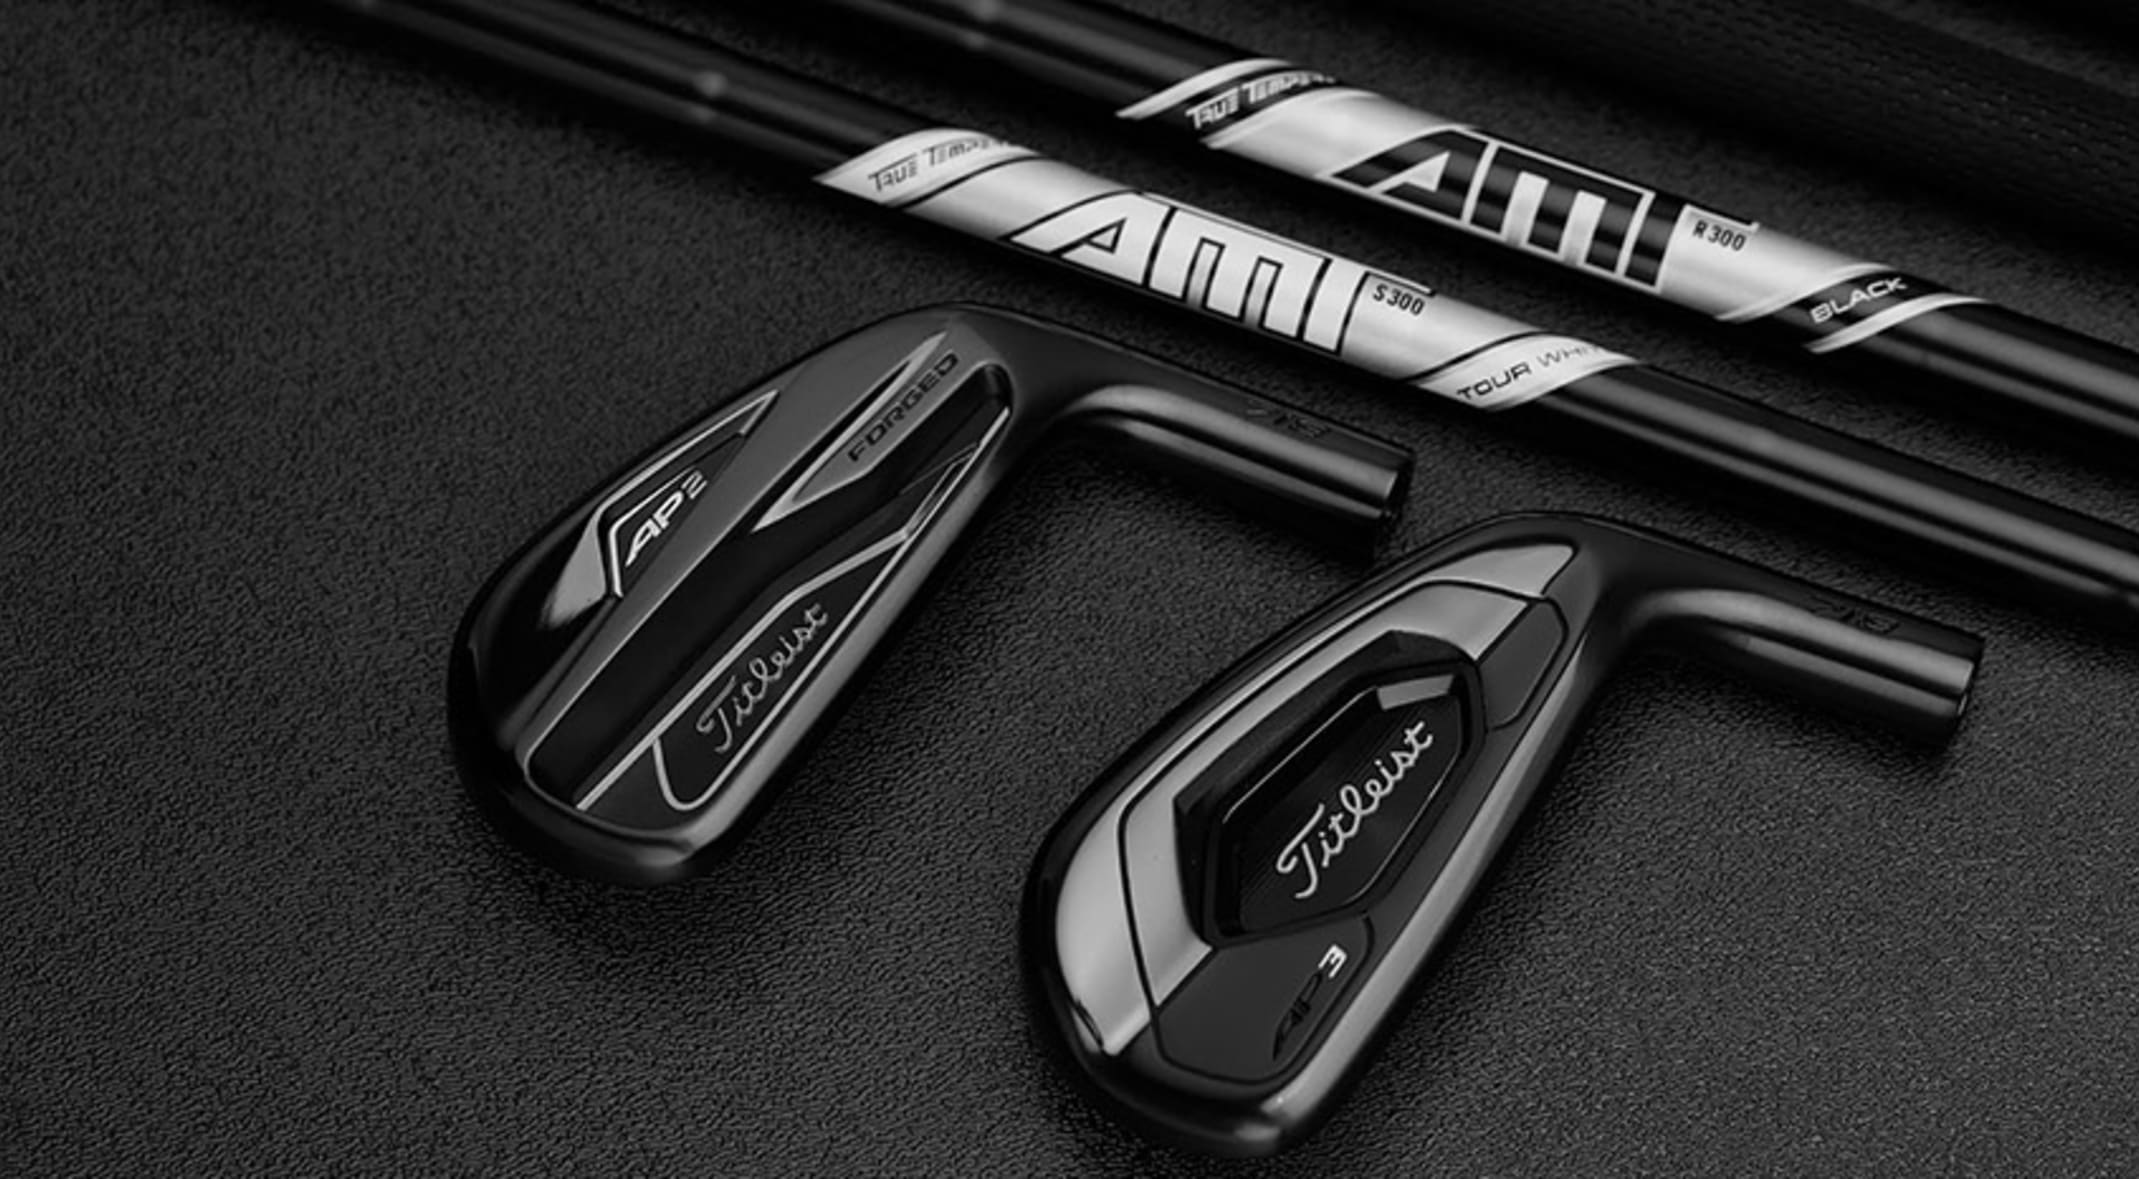 Titleist's new limited-edition, all-black AP2 and AP3 irons